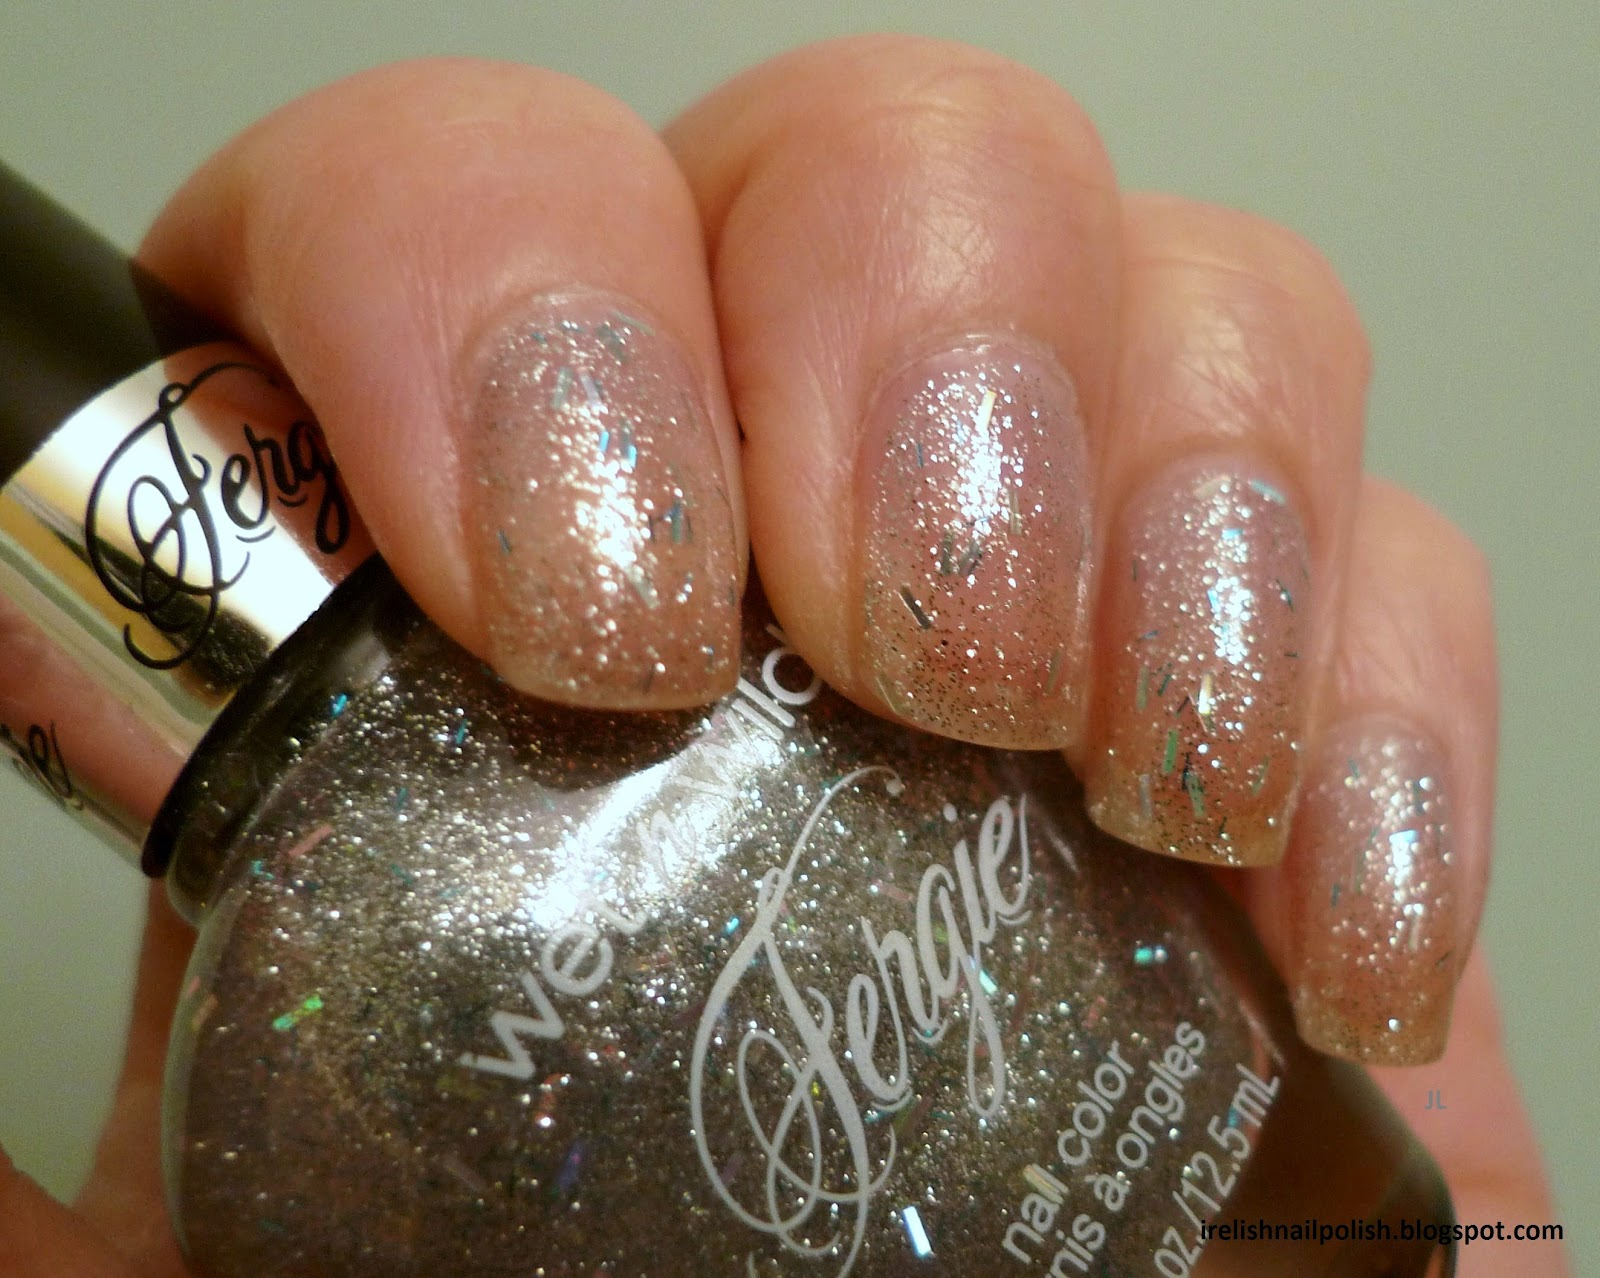 I Relish Nail Polish!: NOTW WNW Fergie New Years Kisses, NUP Sangria